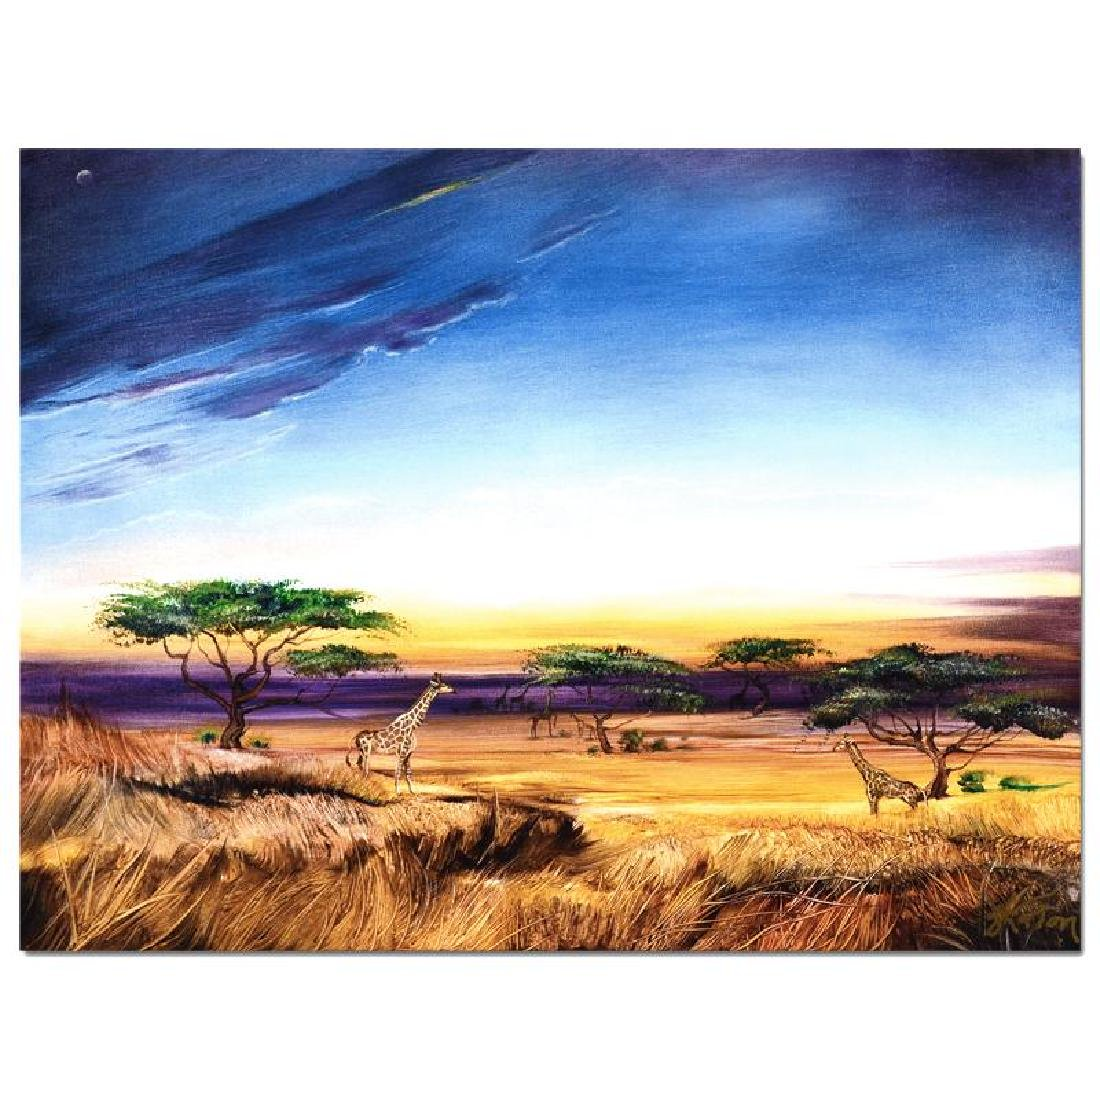 Africa at Peace by Katon, Martin - 3